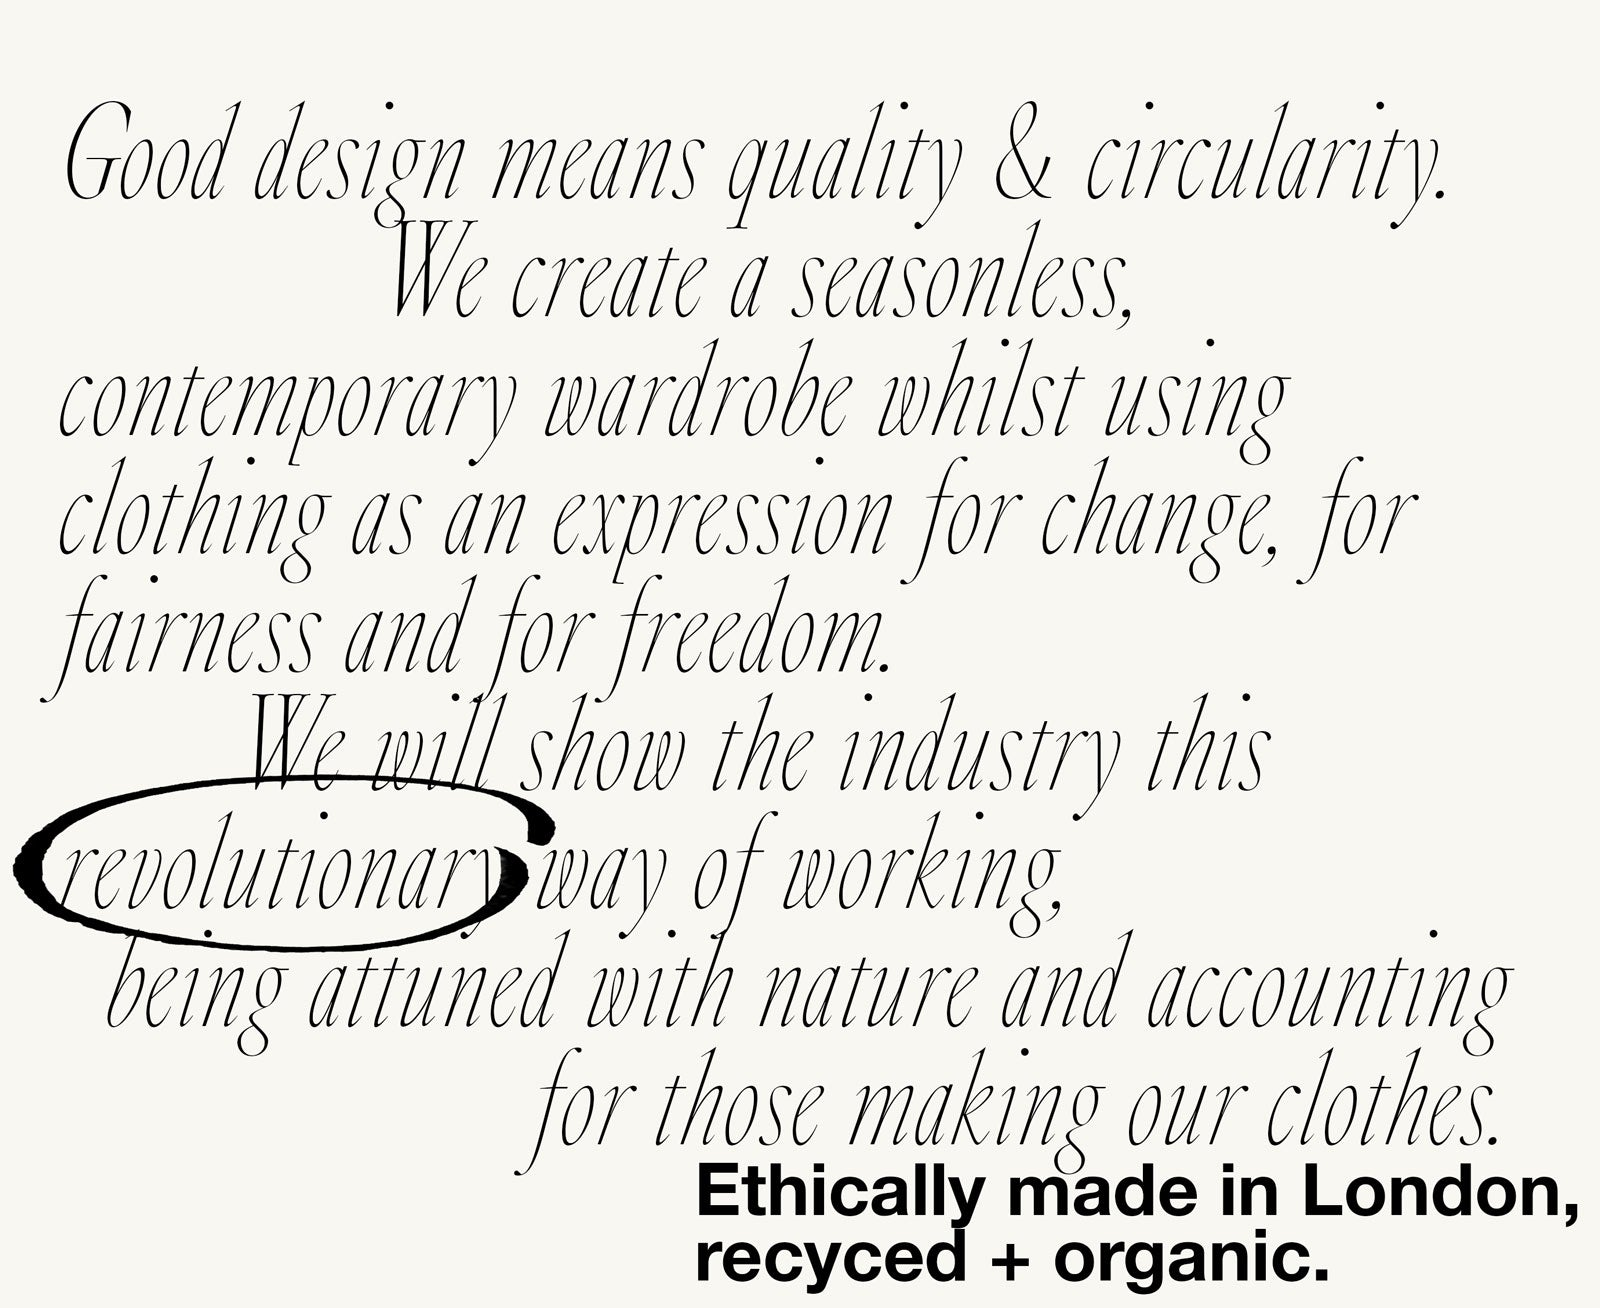 sustainable clothing made in the UK, ethical collection including organic and recycled fabrics